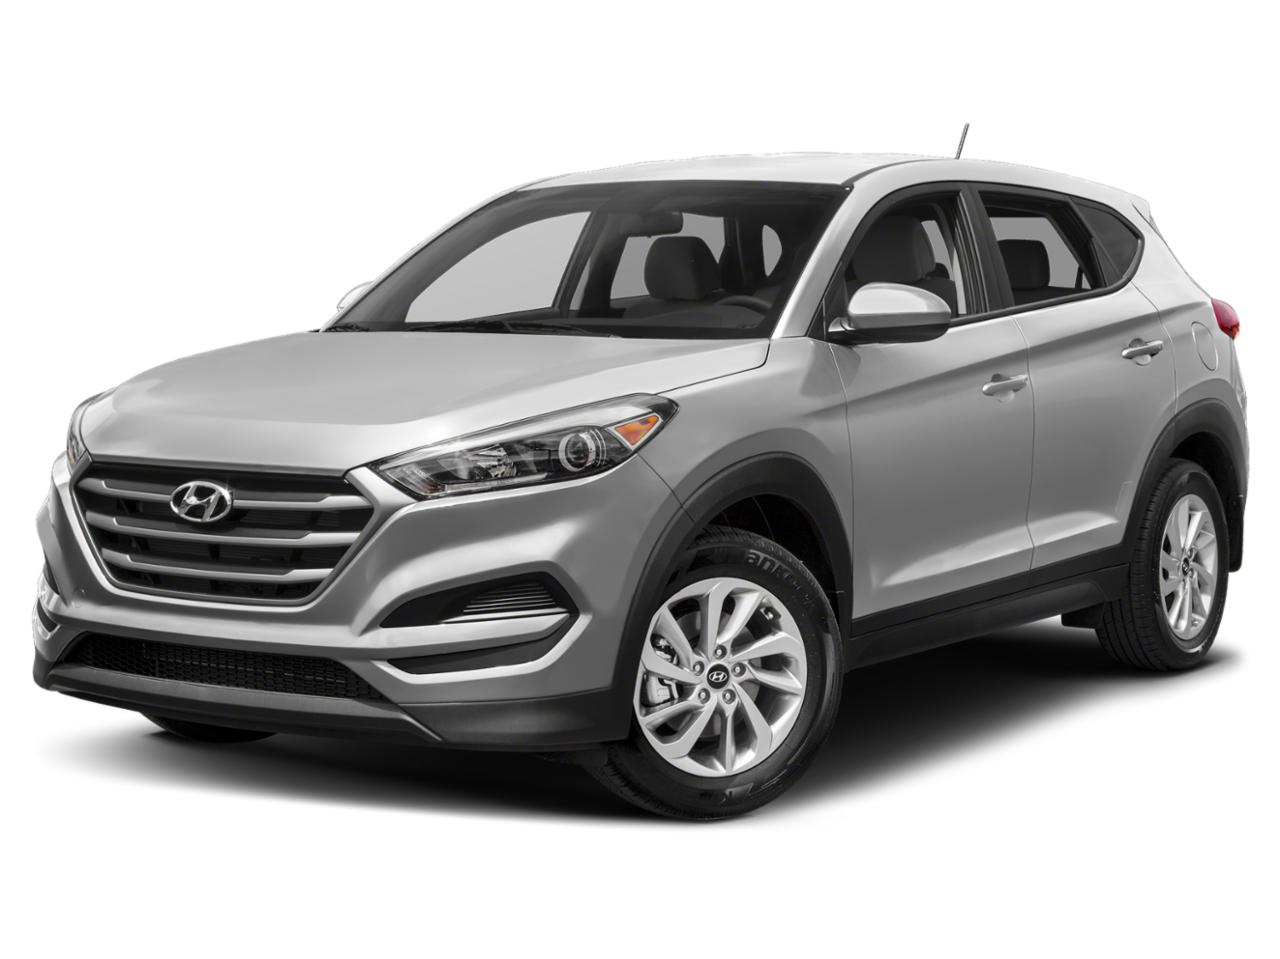 2018 Hyundai Tucson Vehicle Photo in O'Fallon, IL 62269